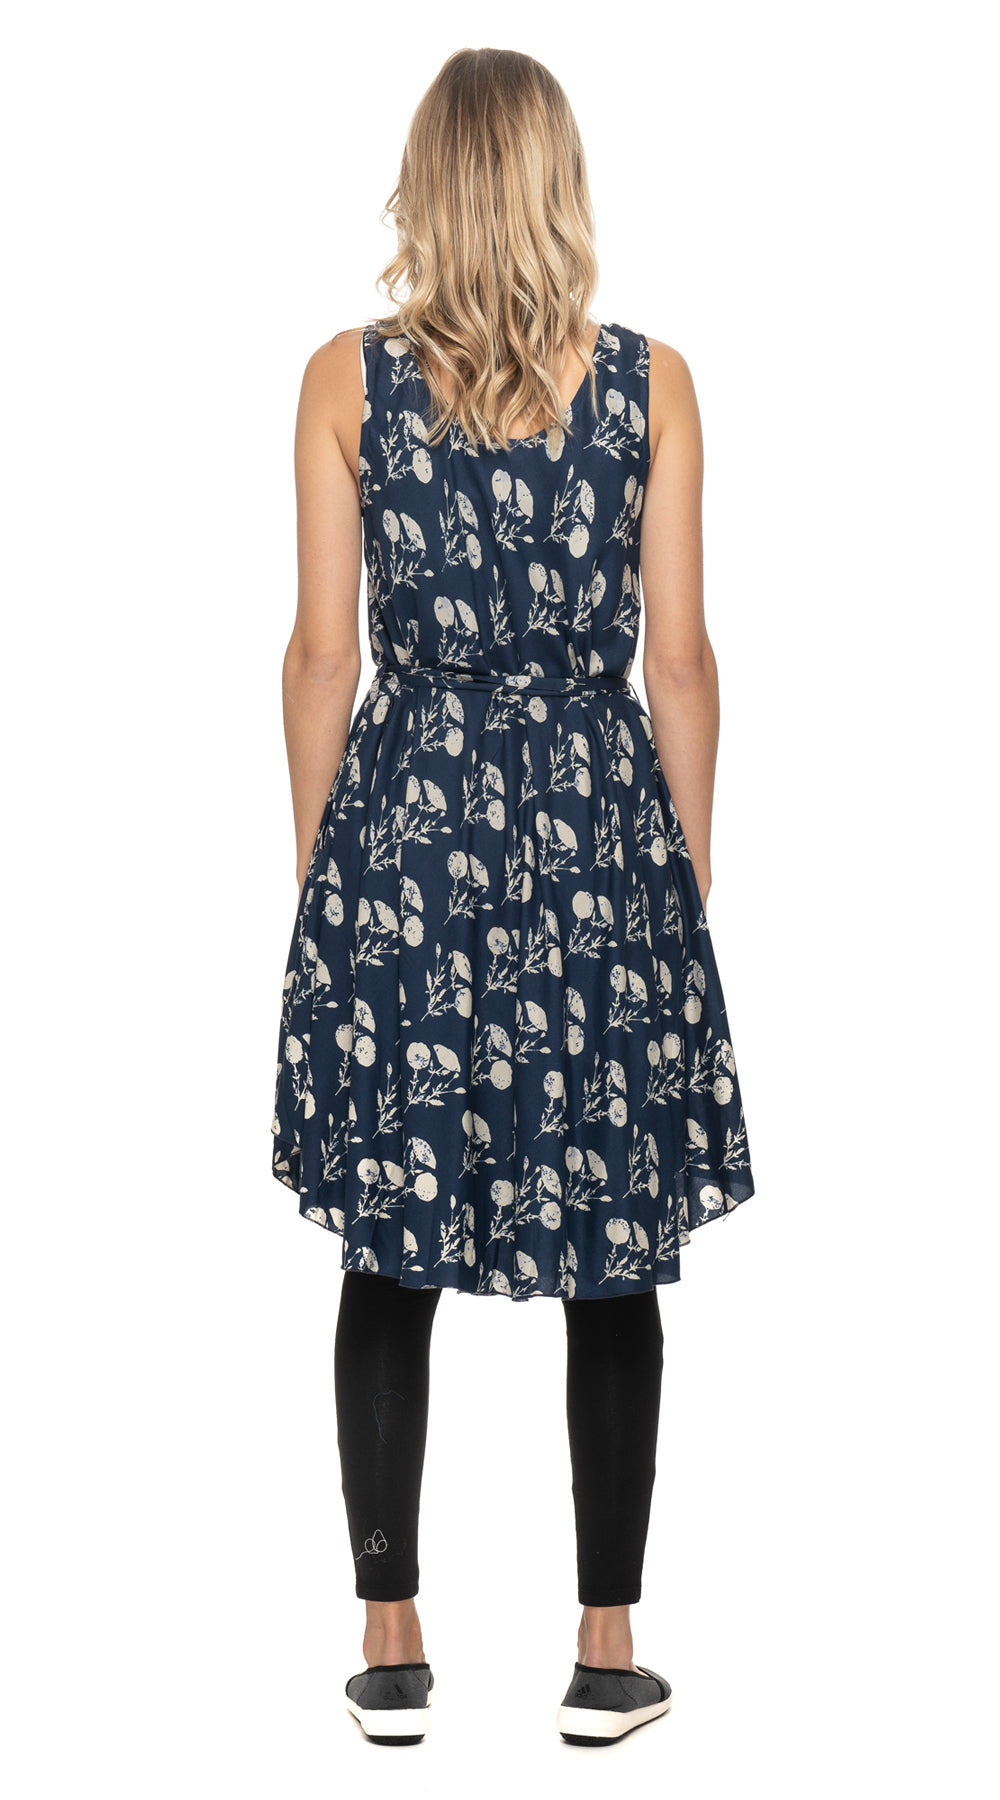 Evelyn Dress - navy+white